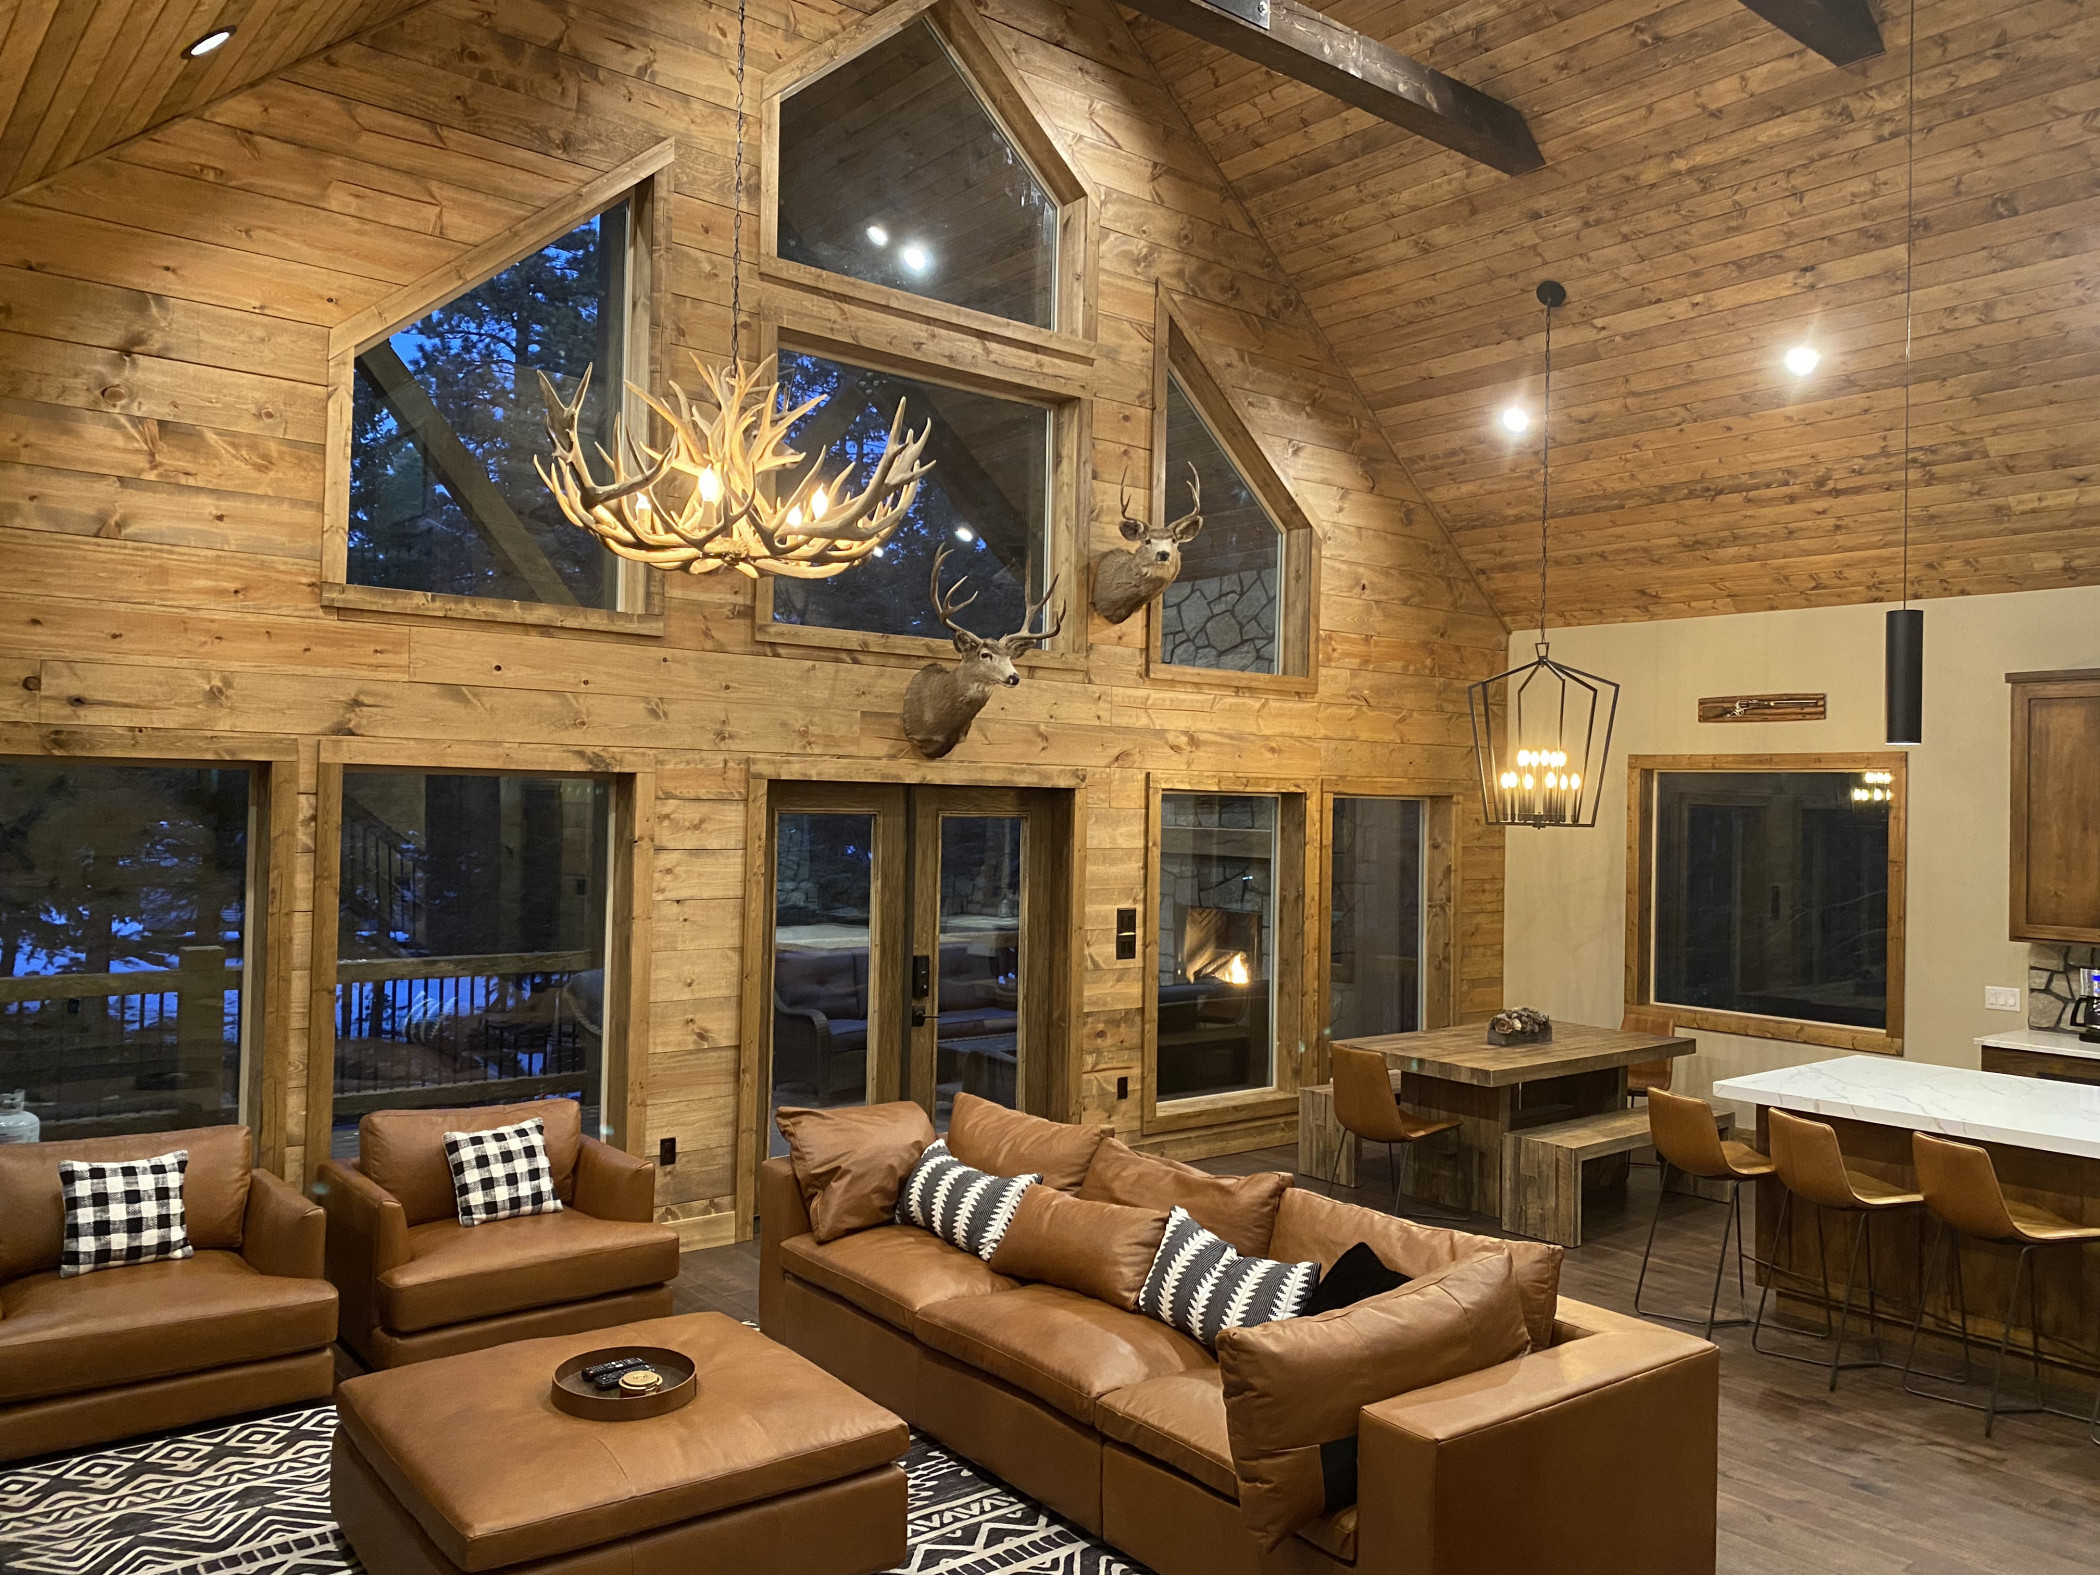 NEW Spacious Cabin with rustic elegance on 1 acre!